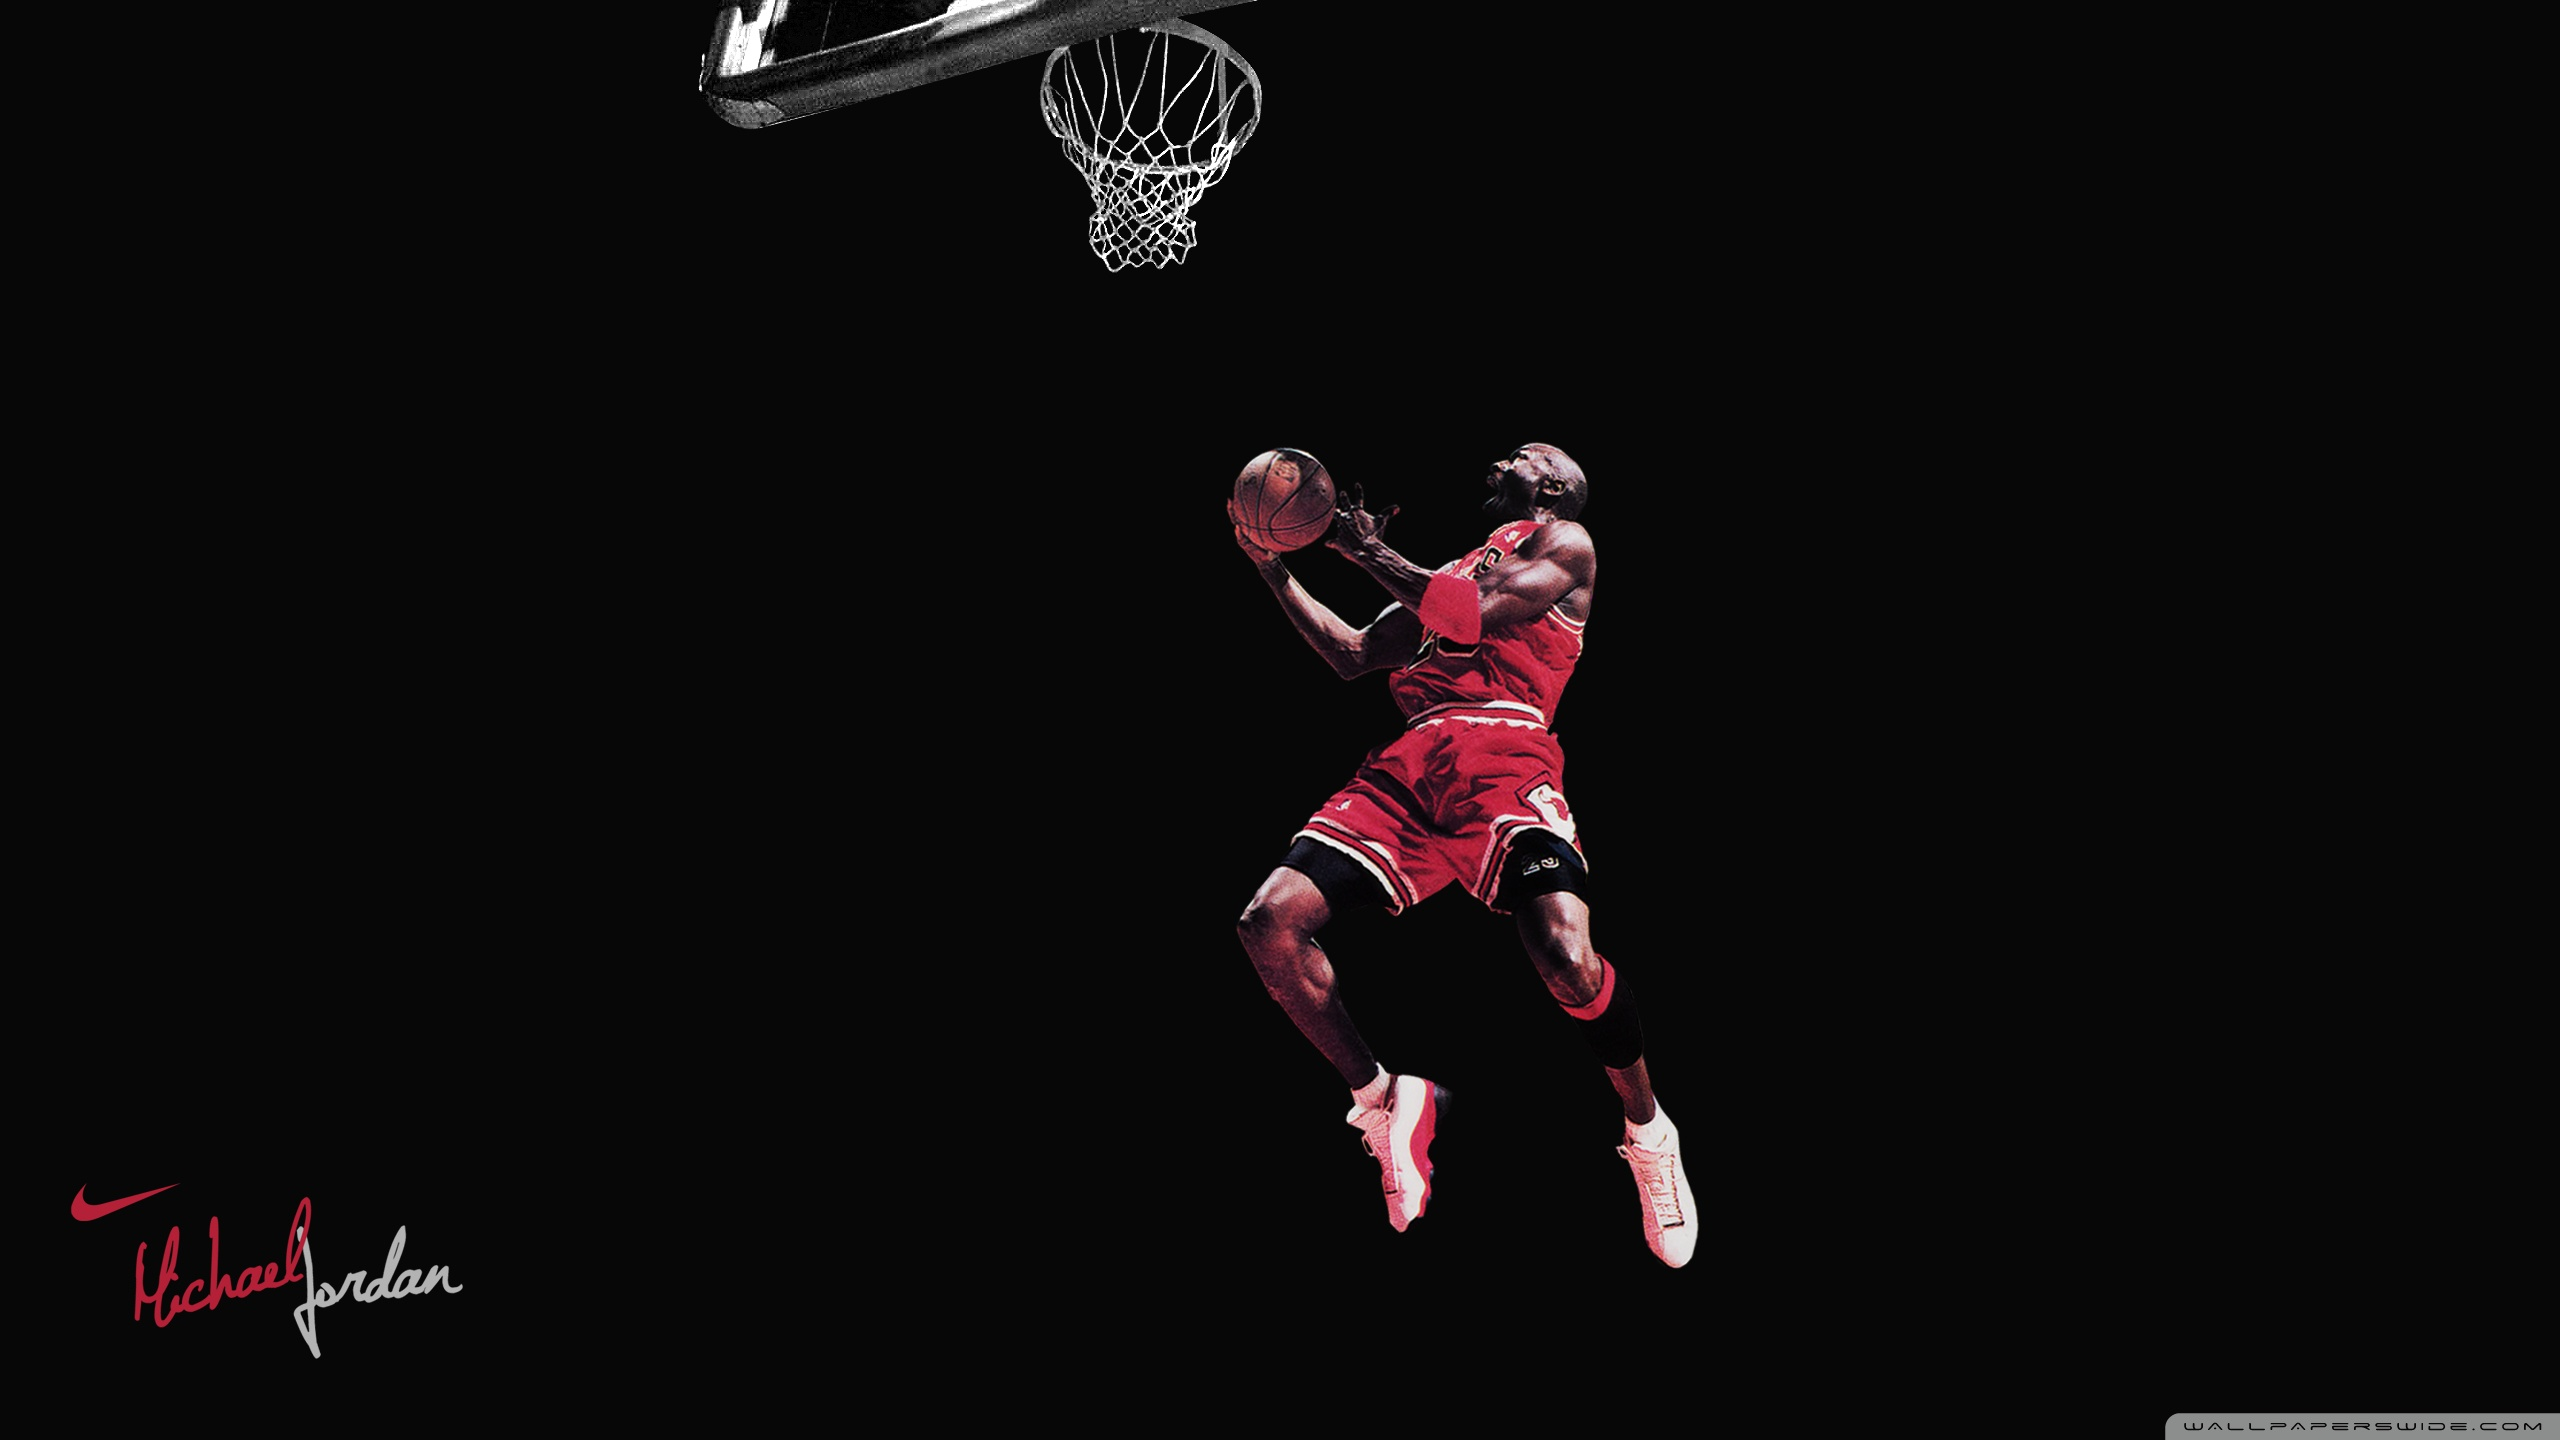 2560x1440 - Michael Jordan Wallpapers 20